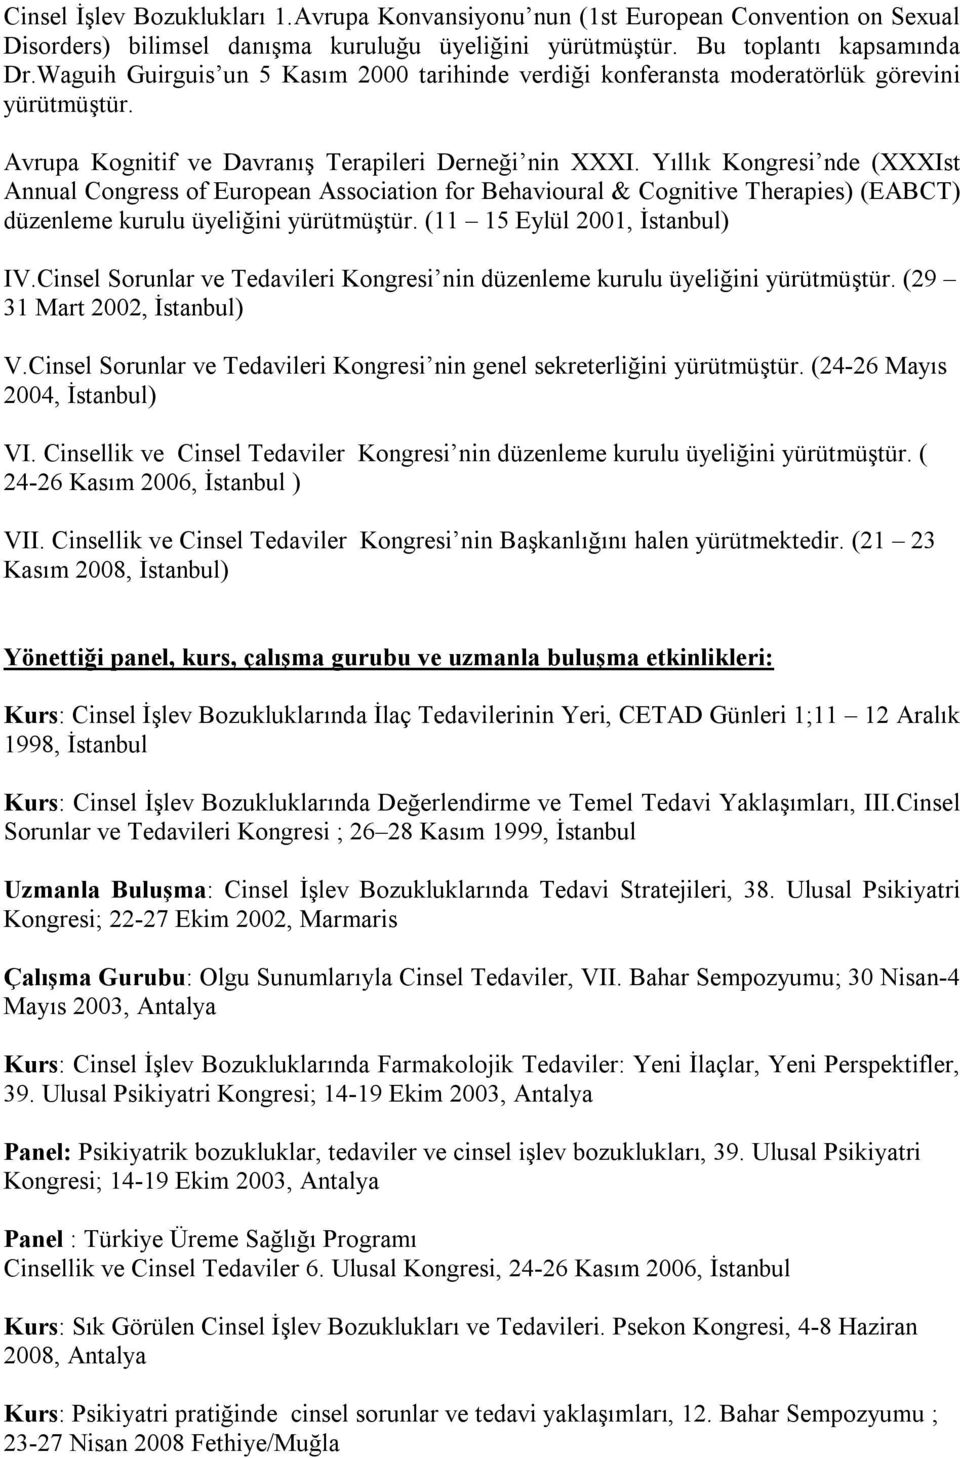 Yıllık Kongresi nde (XXXIst Annual Congress of European Association for Behavioural & Cognitive Therapies) (EABCT) düzenleme kurulu üyeliğini yürütmüştür. (11 15 Eylül 2001, İstanbul) IV.